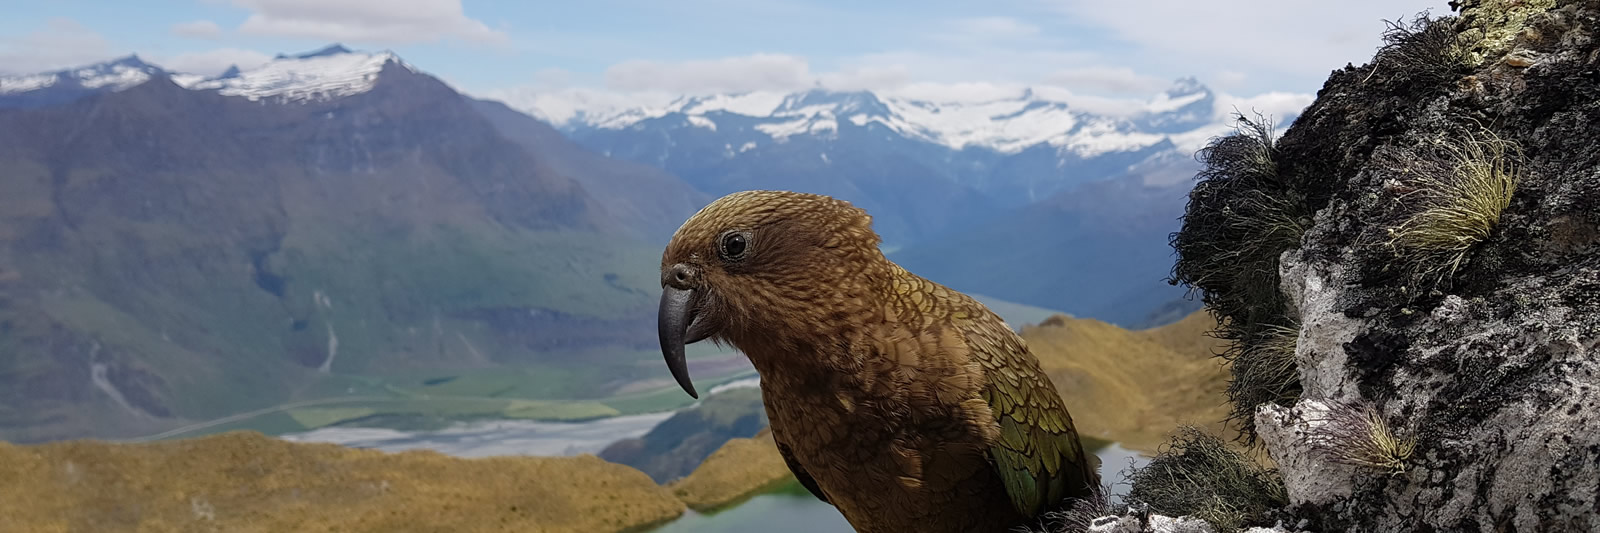 Kea on Eco Wanaka Guided Hiking Adventures